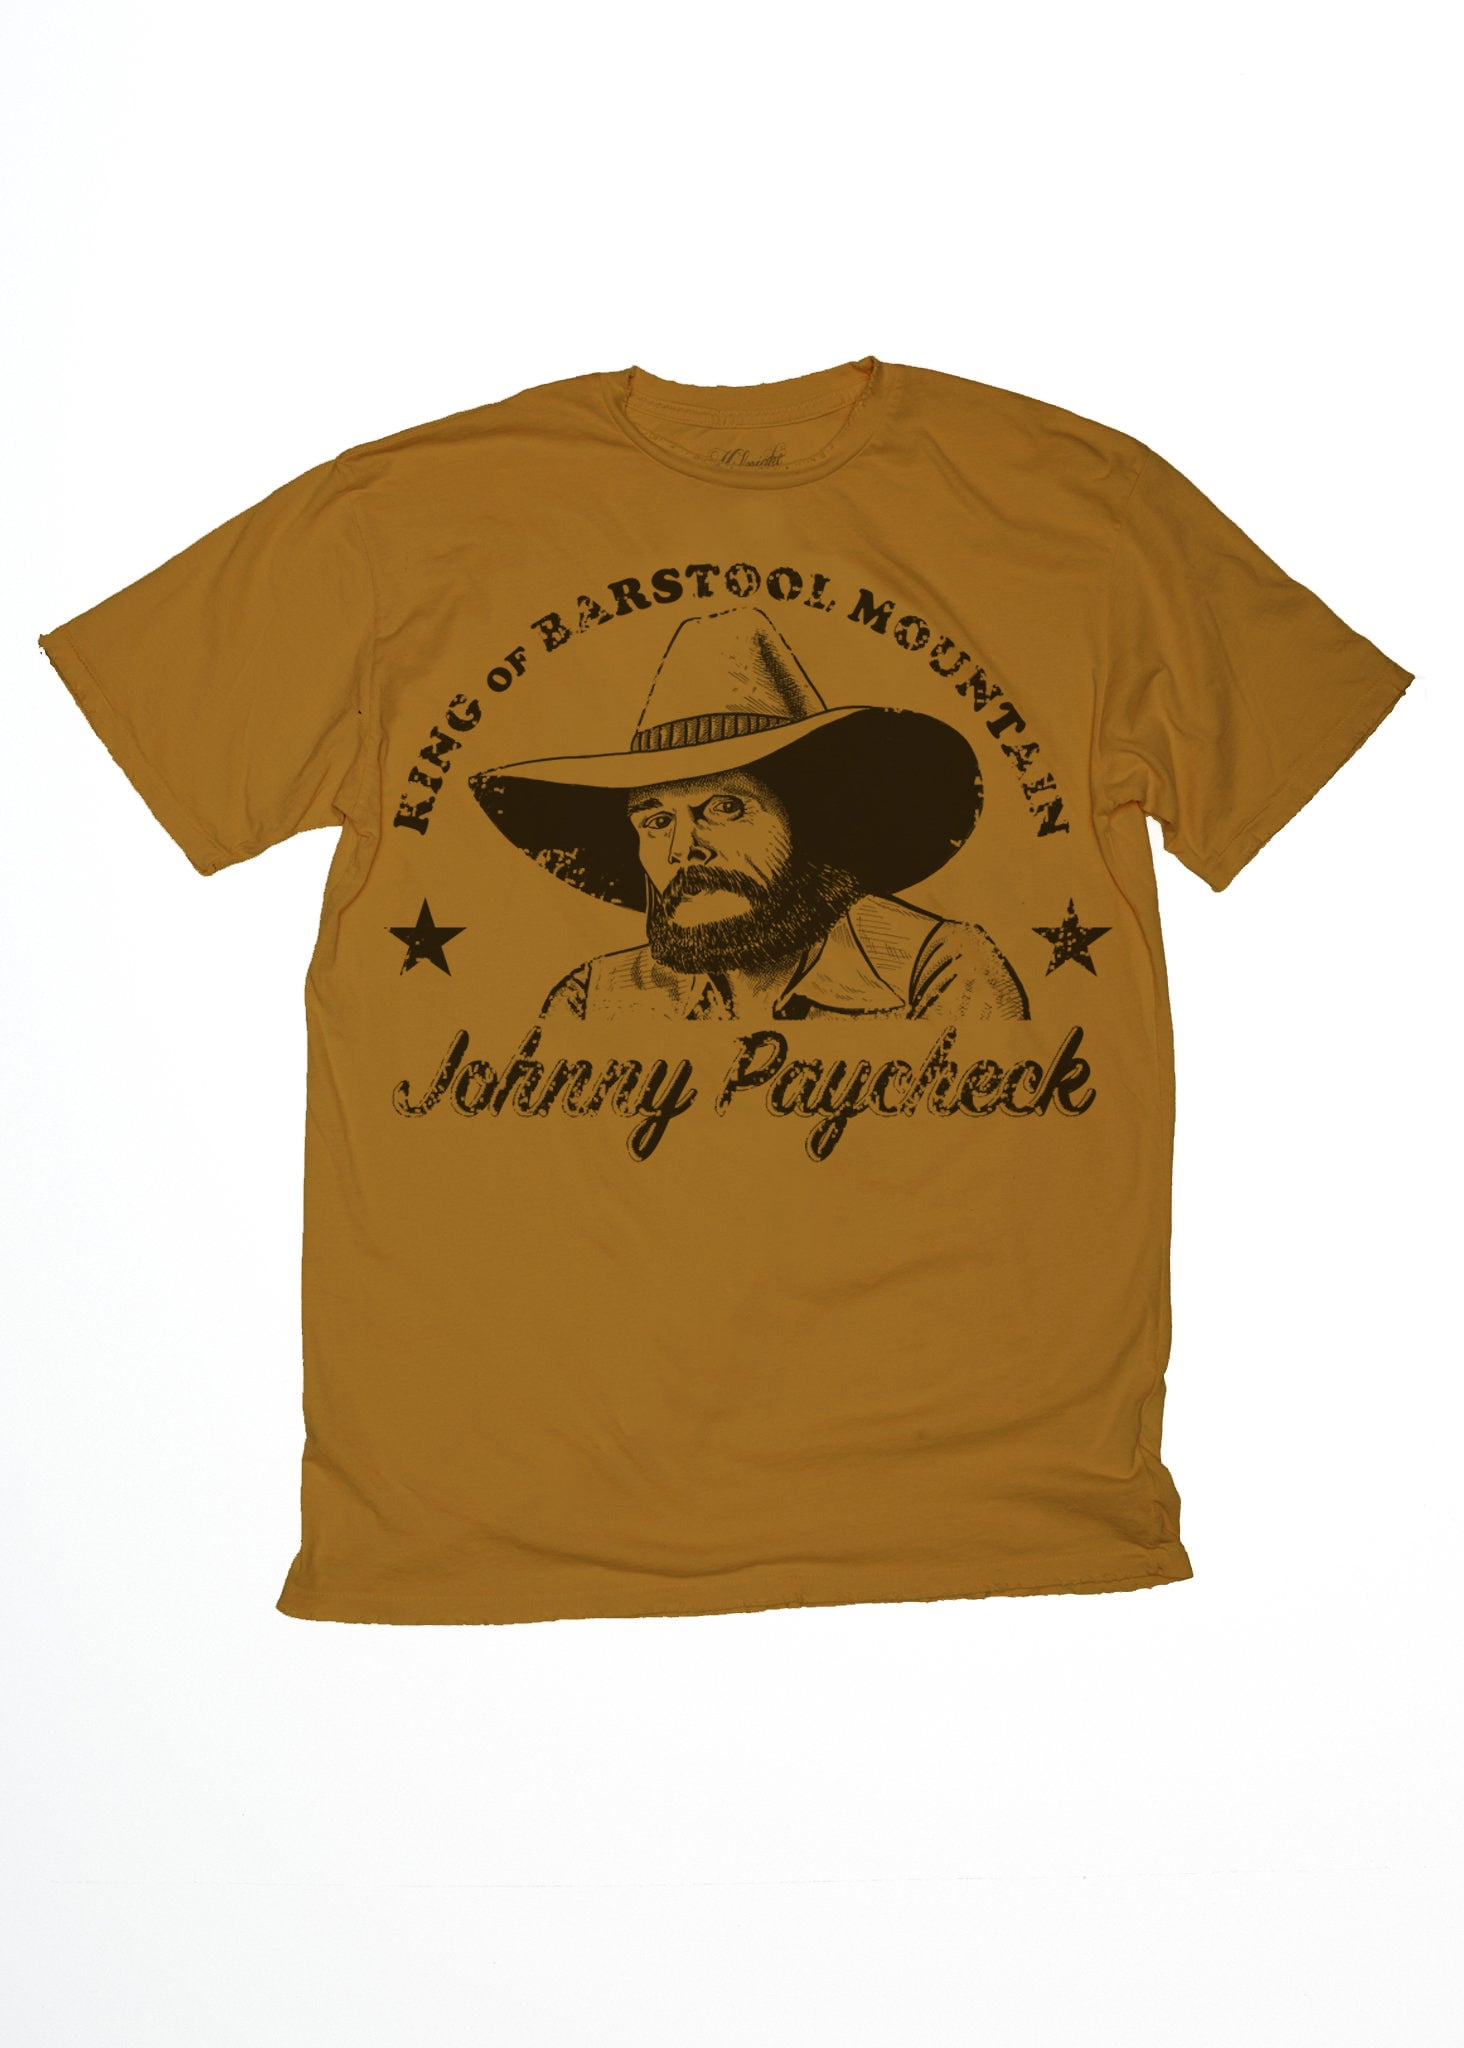 Barstool Mountain Johnny Paycheck Mens Crew Midnight Rider